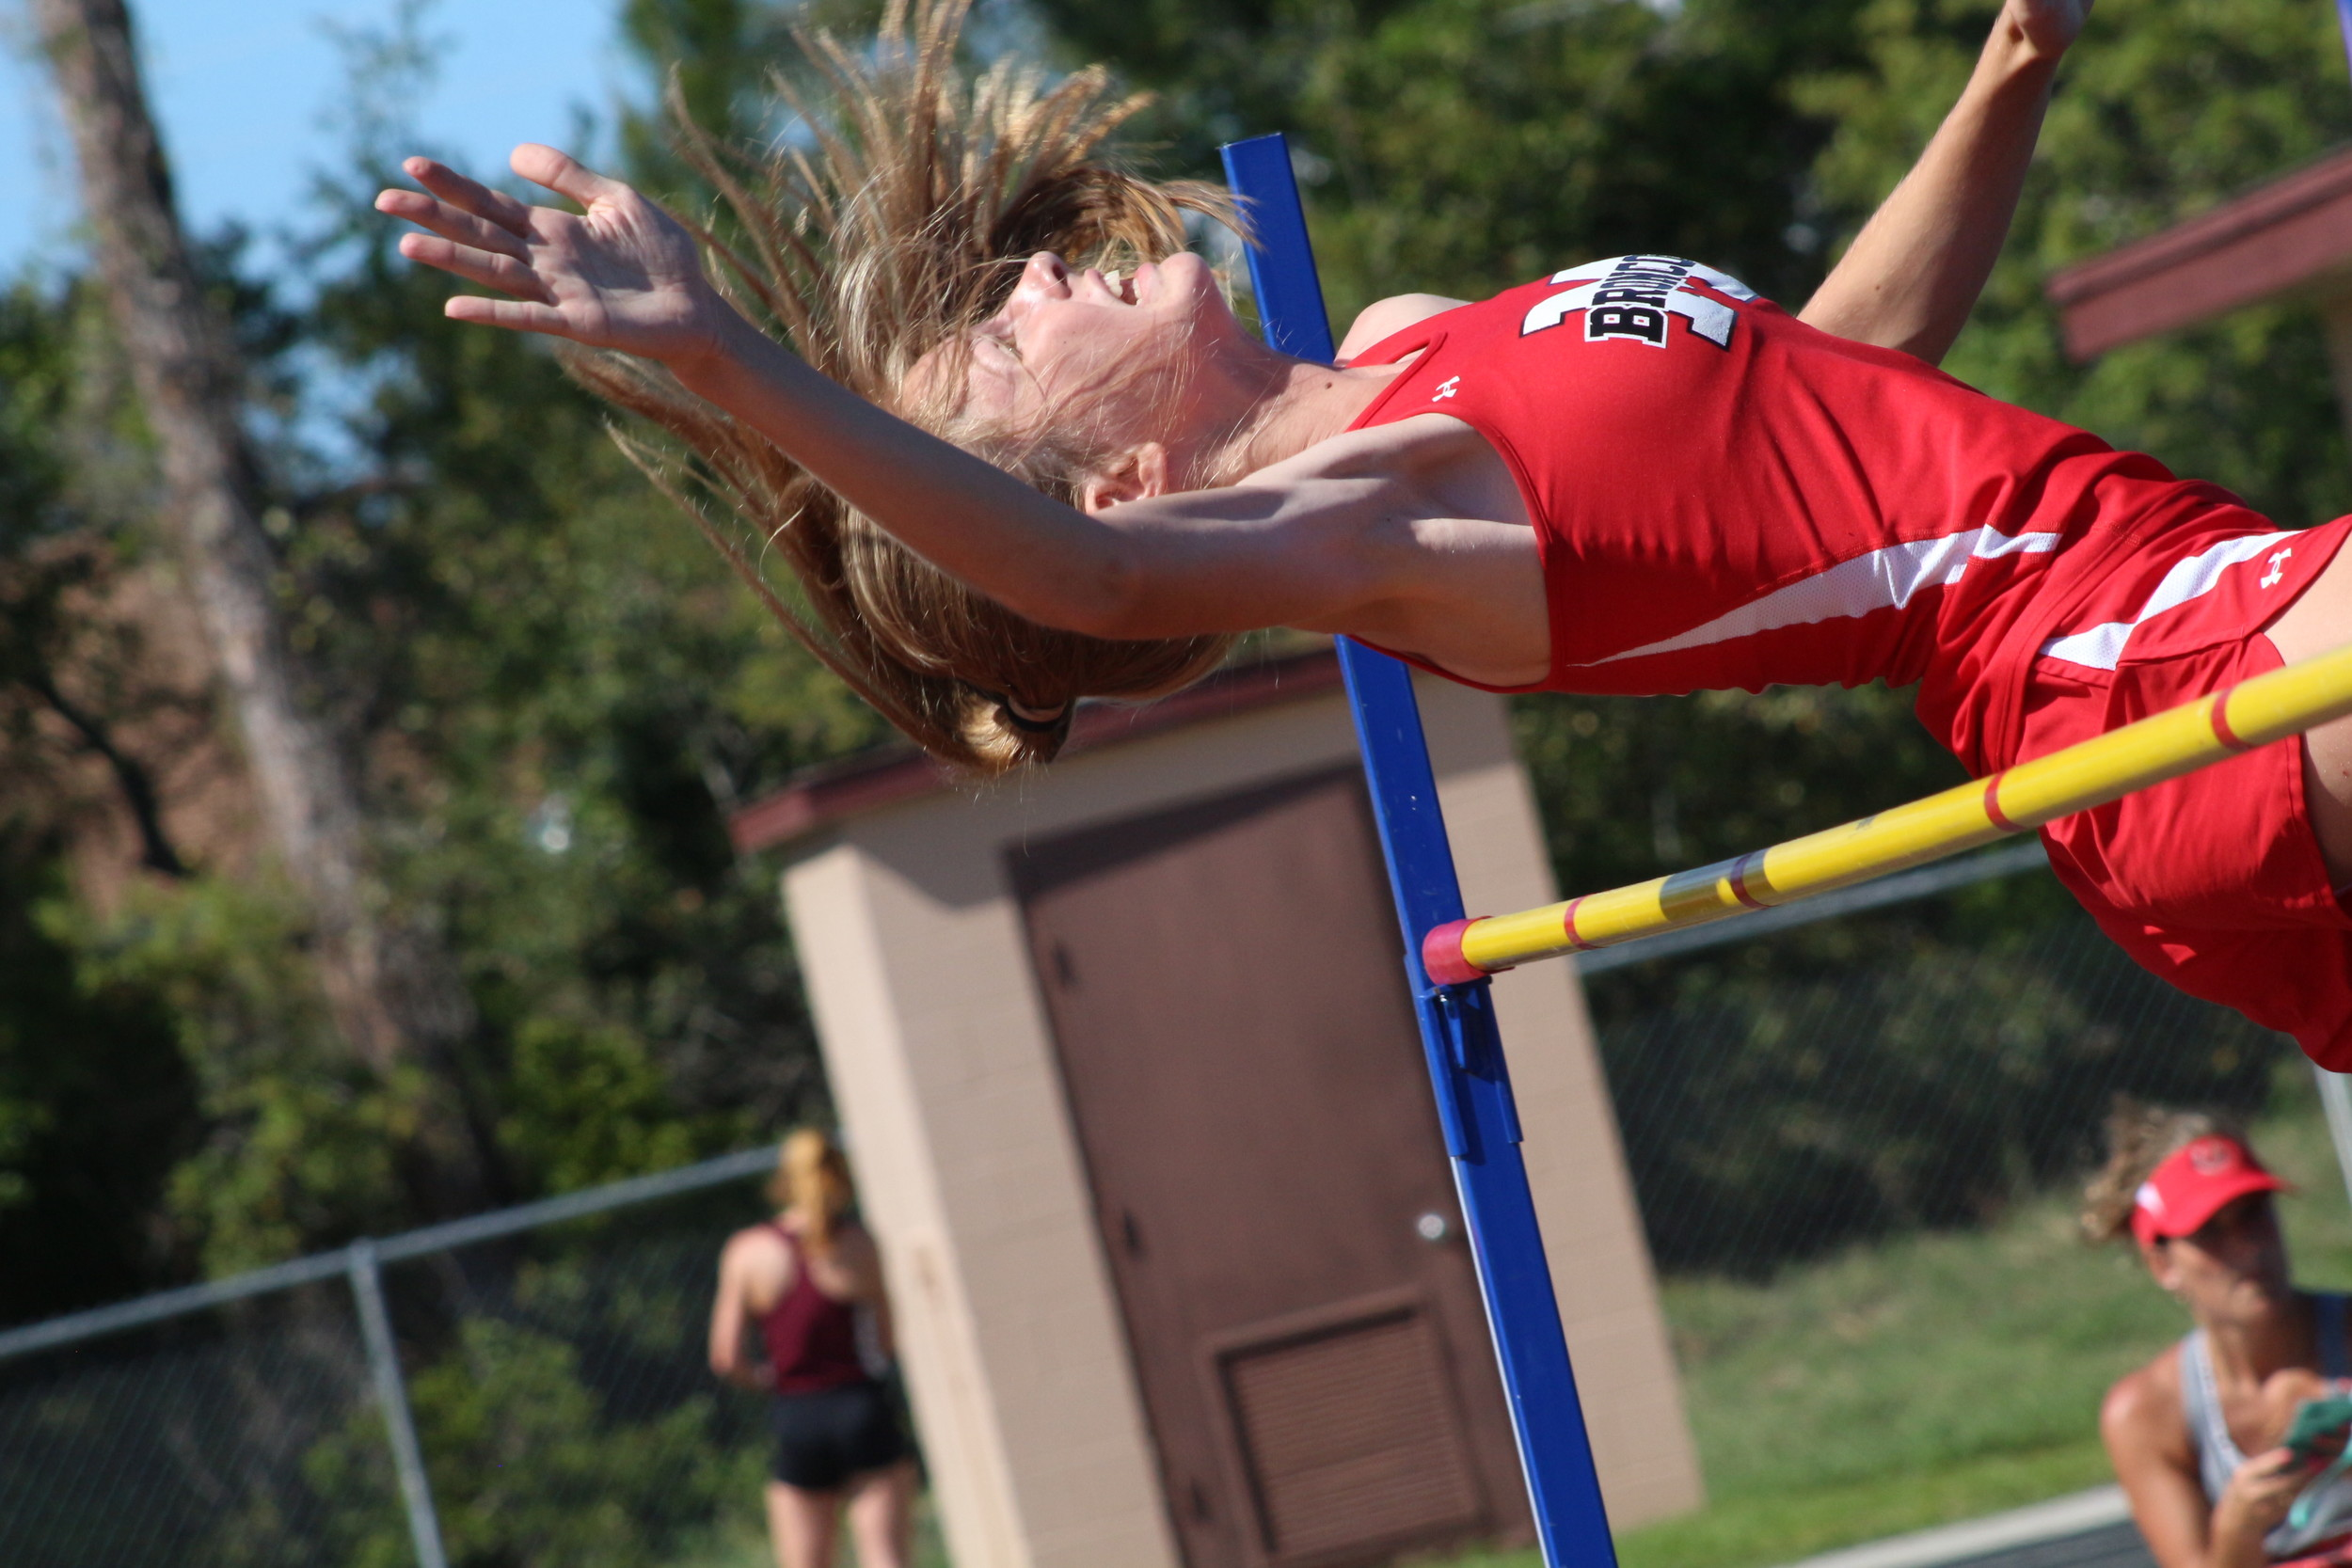 "Middleburg High junior high jumper Kaley Petrosky finished fourth in the Class 3A high jump after winning districts and finishing second at regions. Petrosky's high jump teammate, sophomore Bryce Quiett, took sixth at 6'-2"" also in the Class 3A high jump."